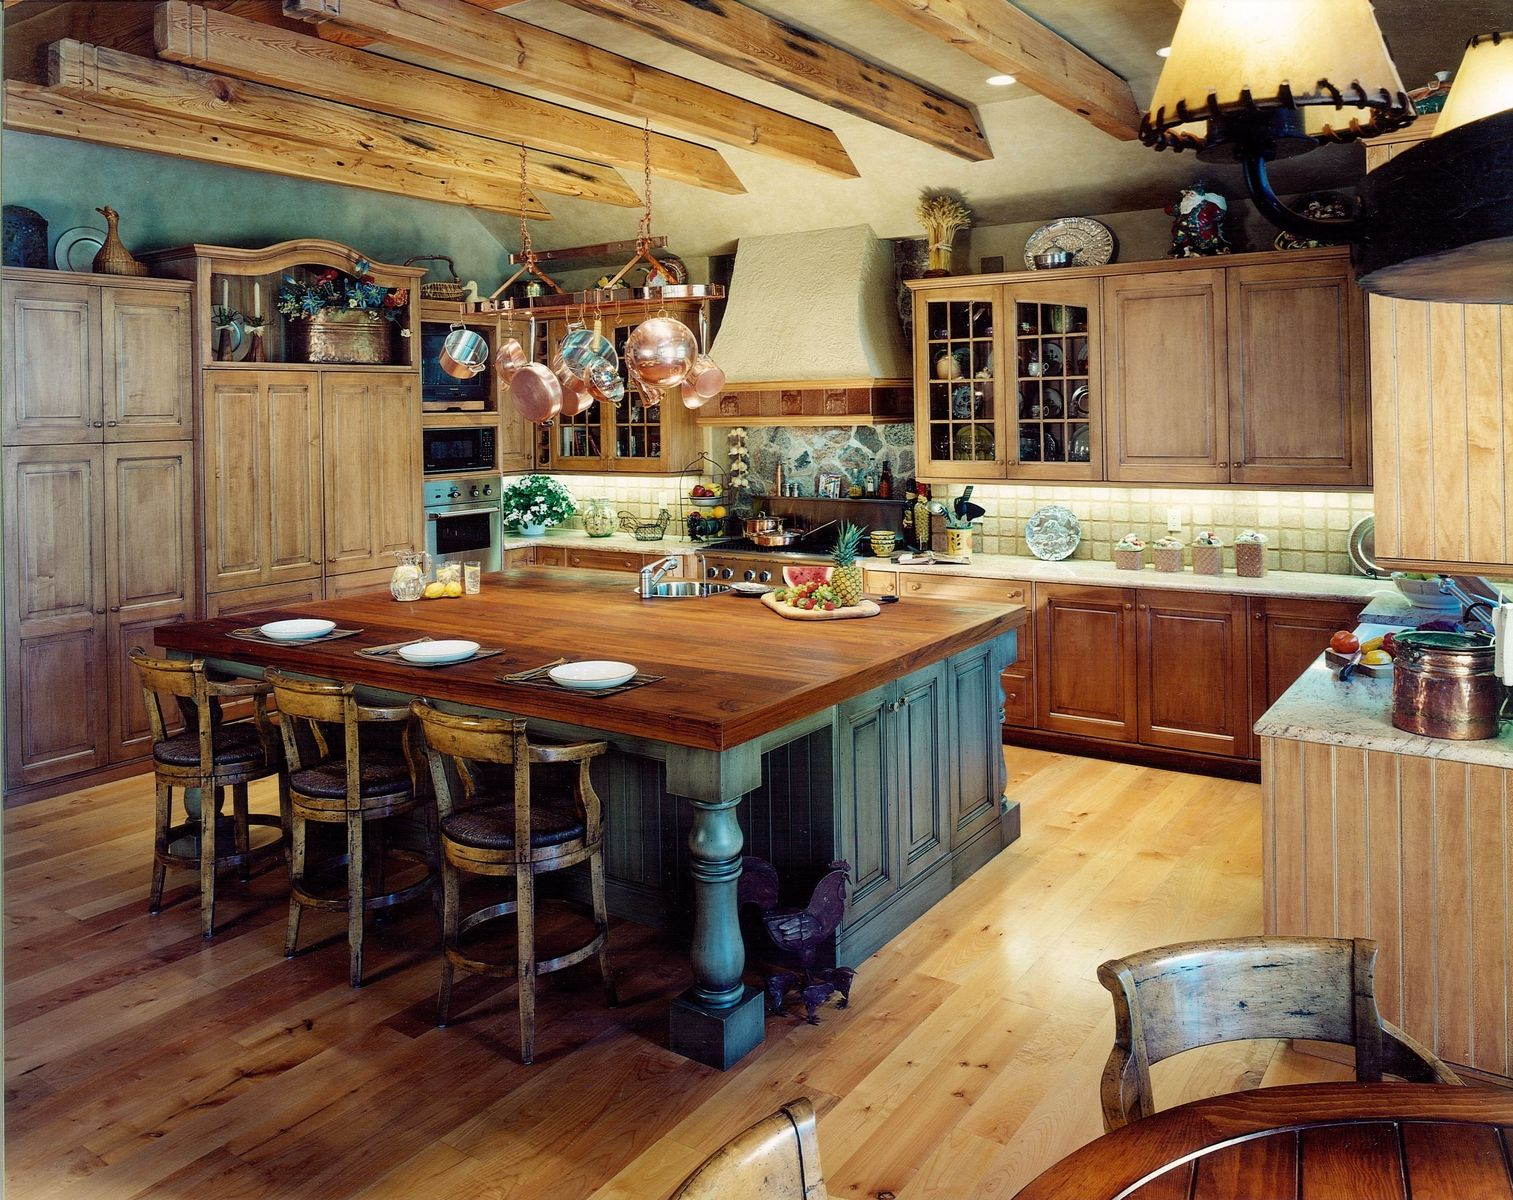 Custom Rustic Kitchens New Custom Rustic Mountain Kitchen & Diningcabinets & Design Iron Decorating Design